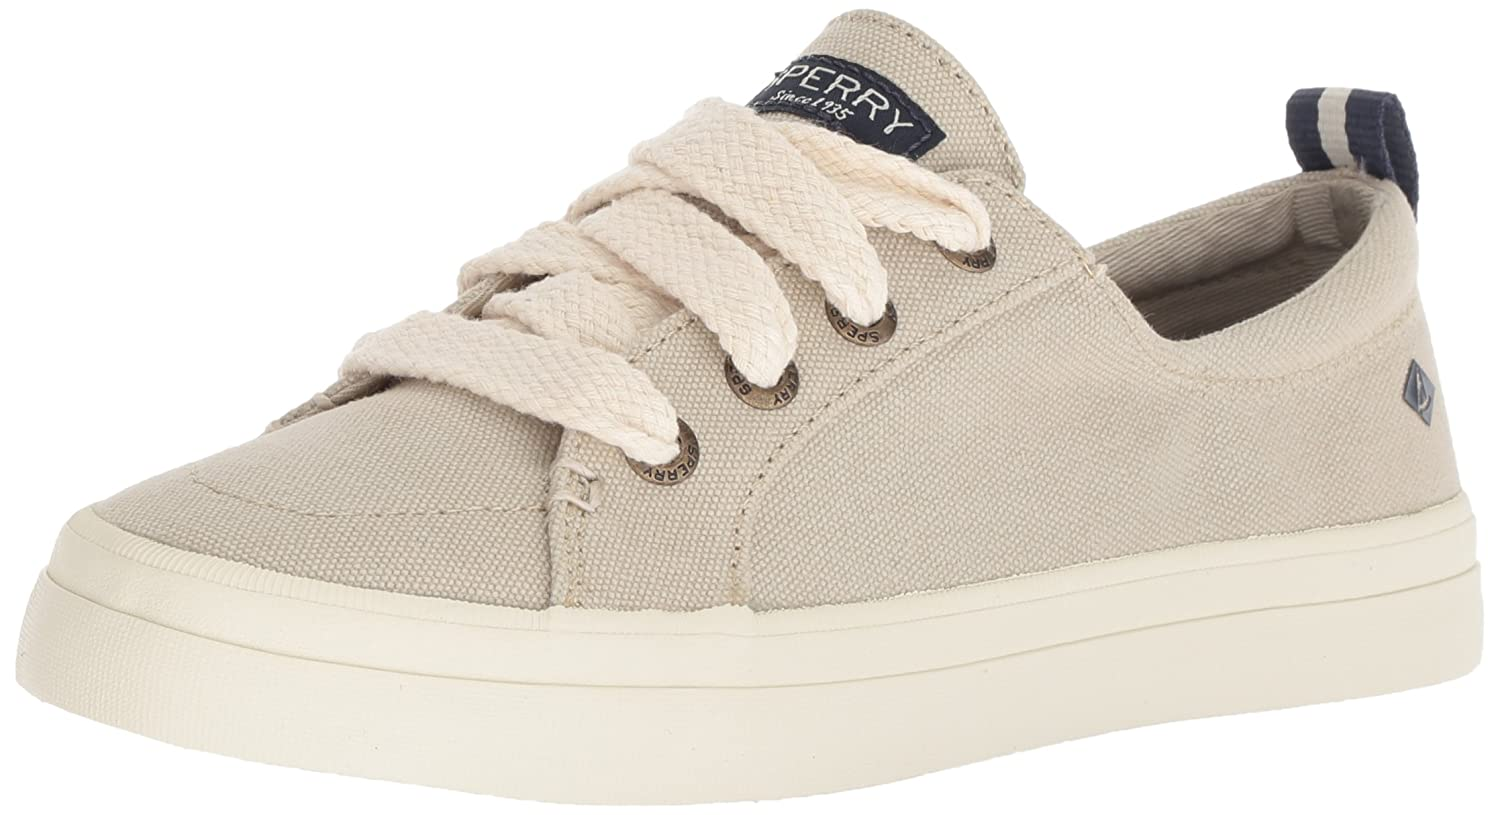 Sperry Top-Sider Women's Crest Vibe Chubby Lace Sneaker B078SGM4YV 11 M US|Ivory